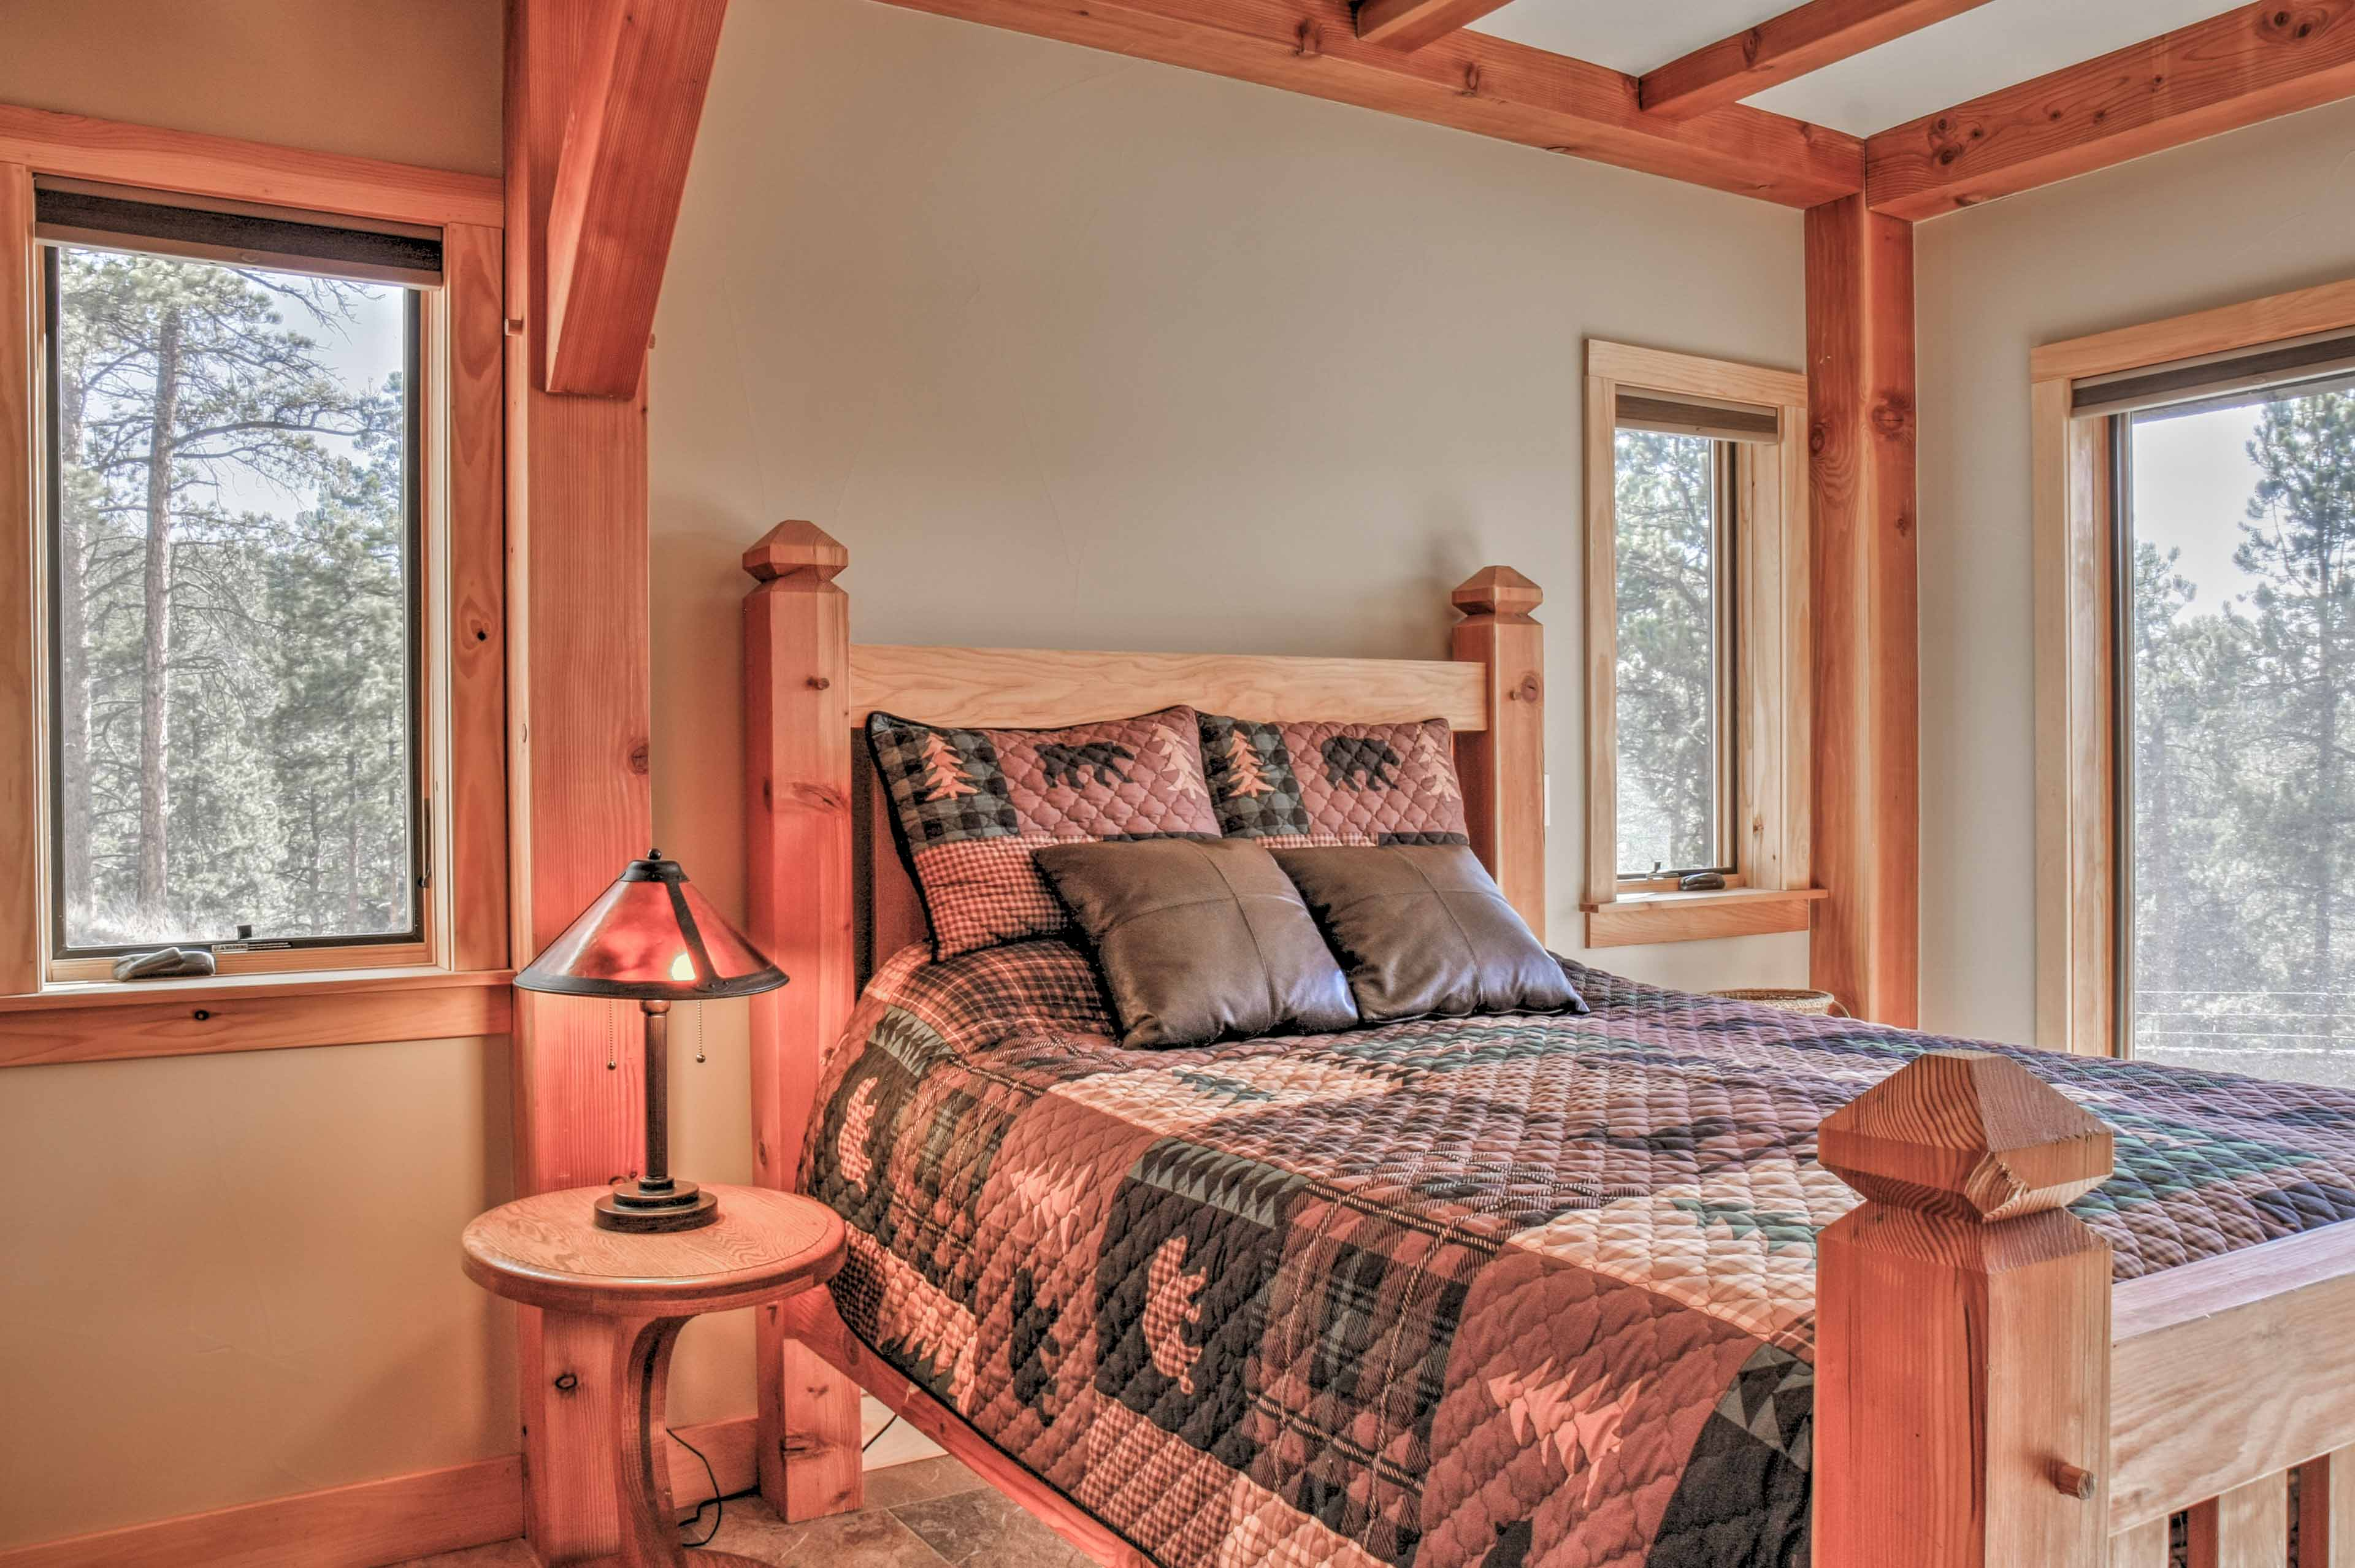 Rest easy on the queen bed in the first bedroom.